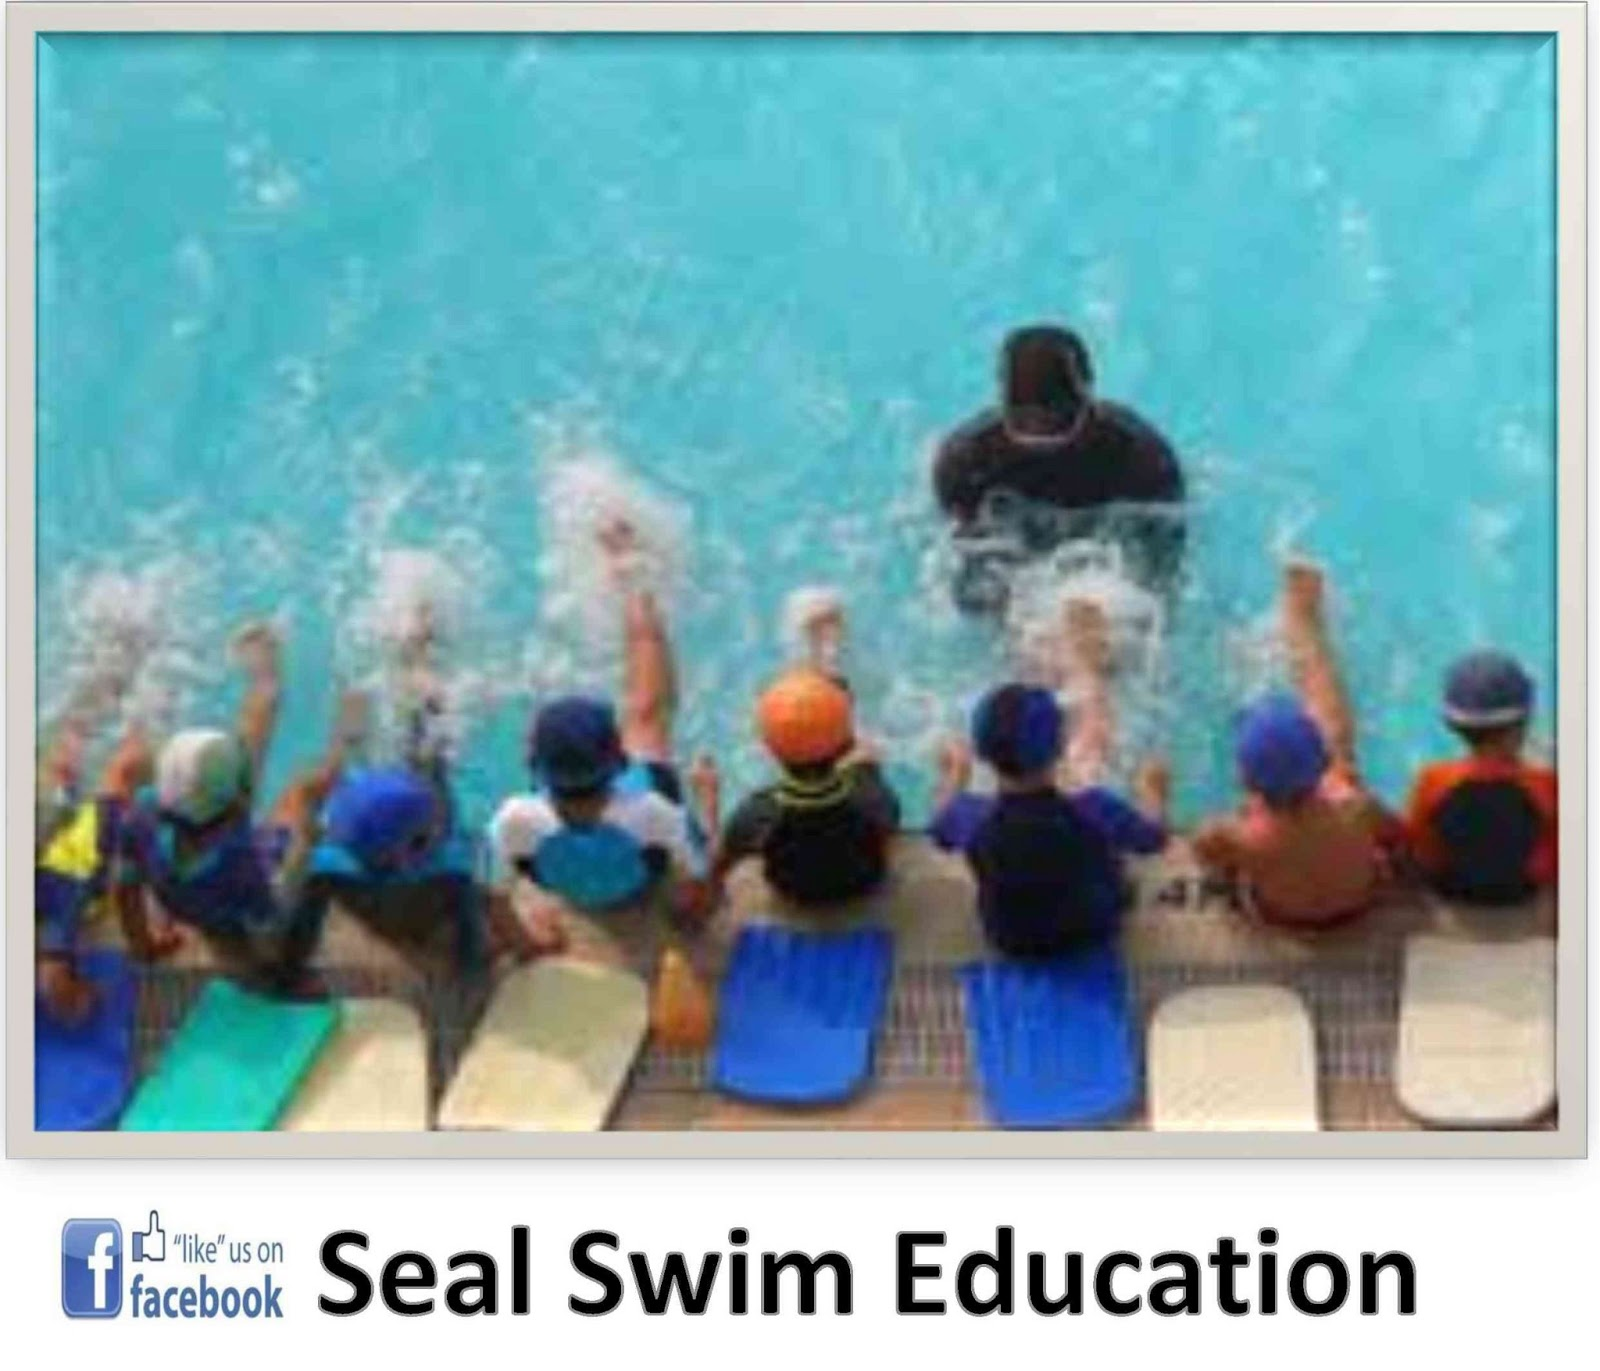 Seal Swim Education